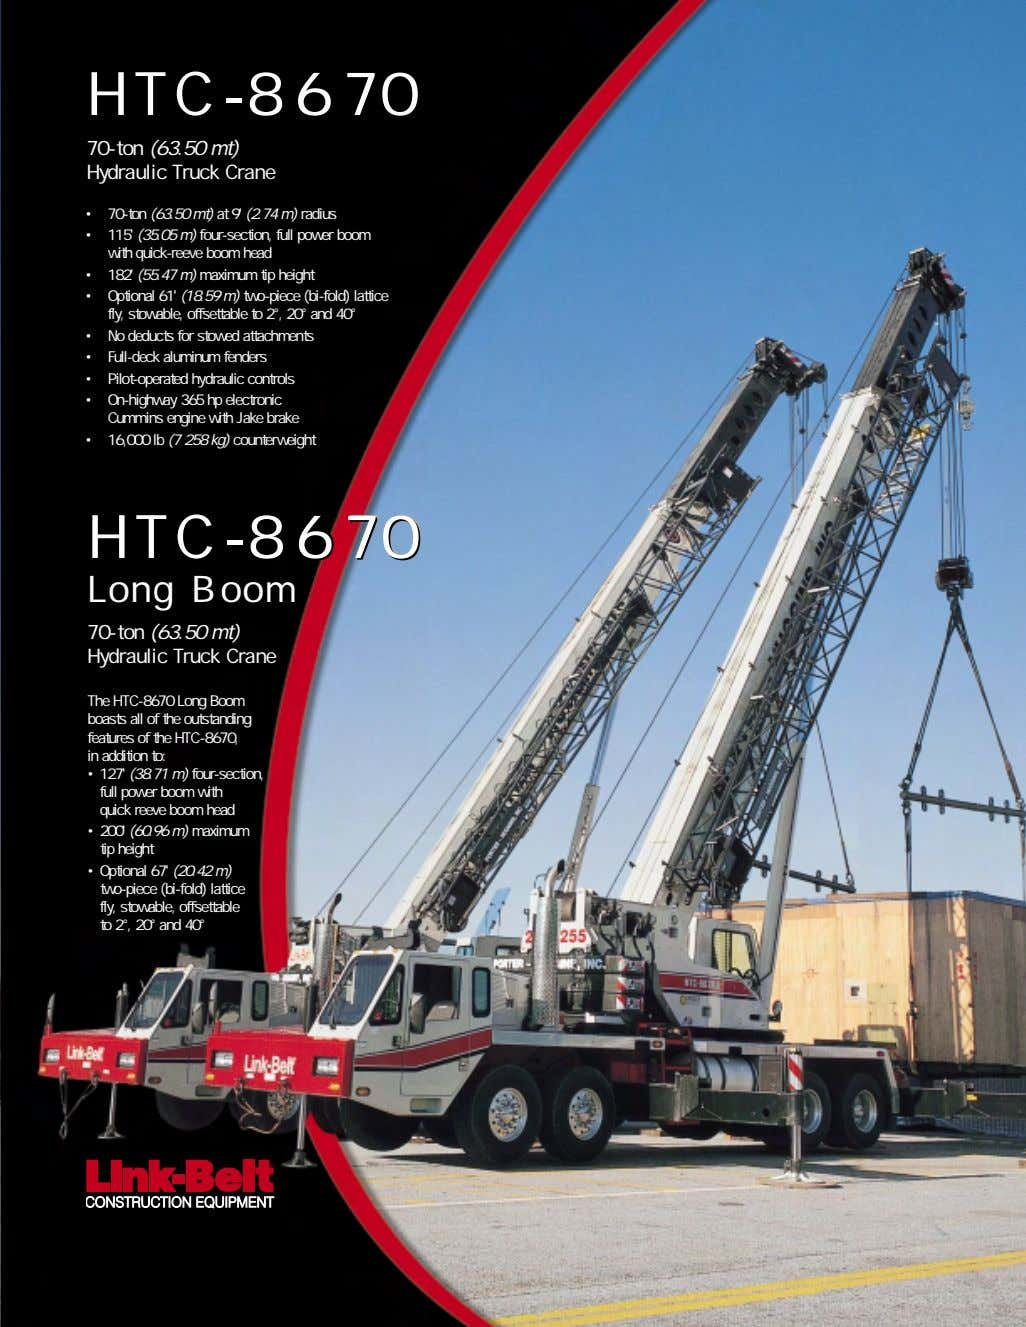 HTC-8670 70-ton (63.50 mt) Hydraulic Truck Crane • 70-ton (63.50 mt) at 9' (2.74 m)